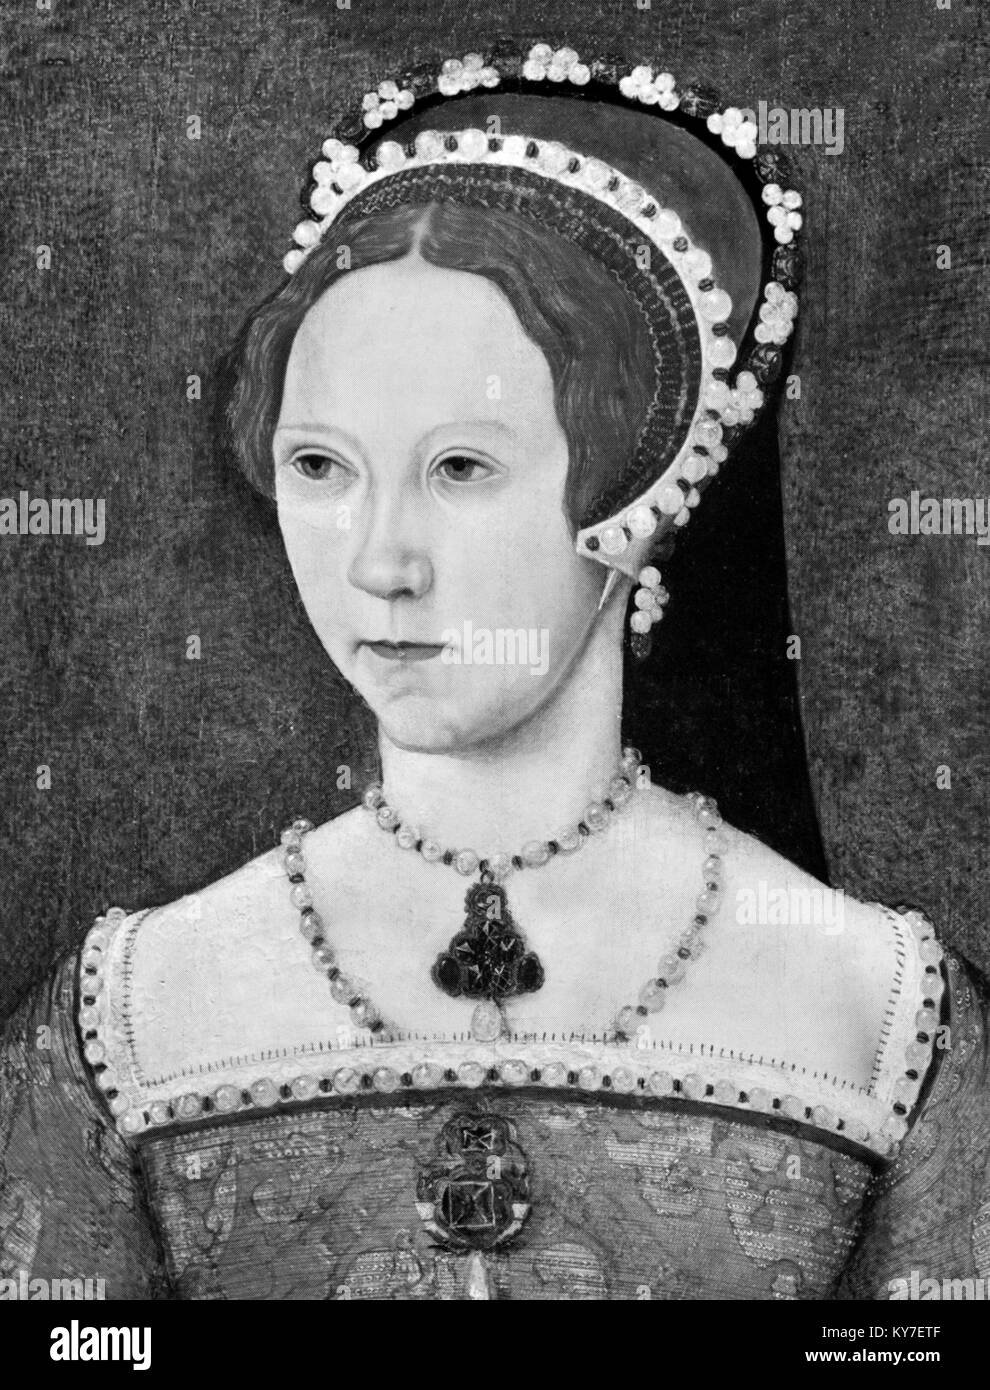 Mary I. Portrait of Queen Mary I of England (1516-1558) - Stock Image